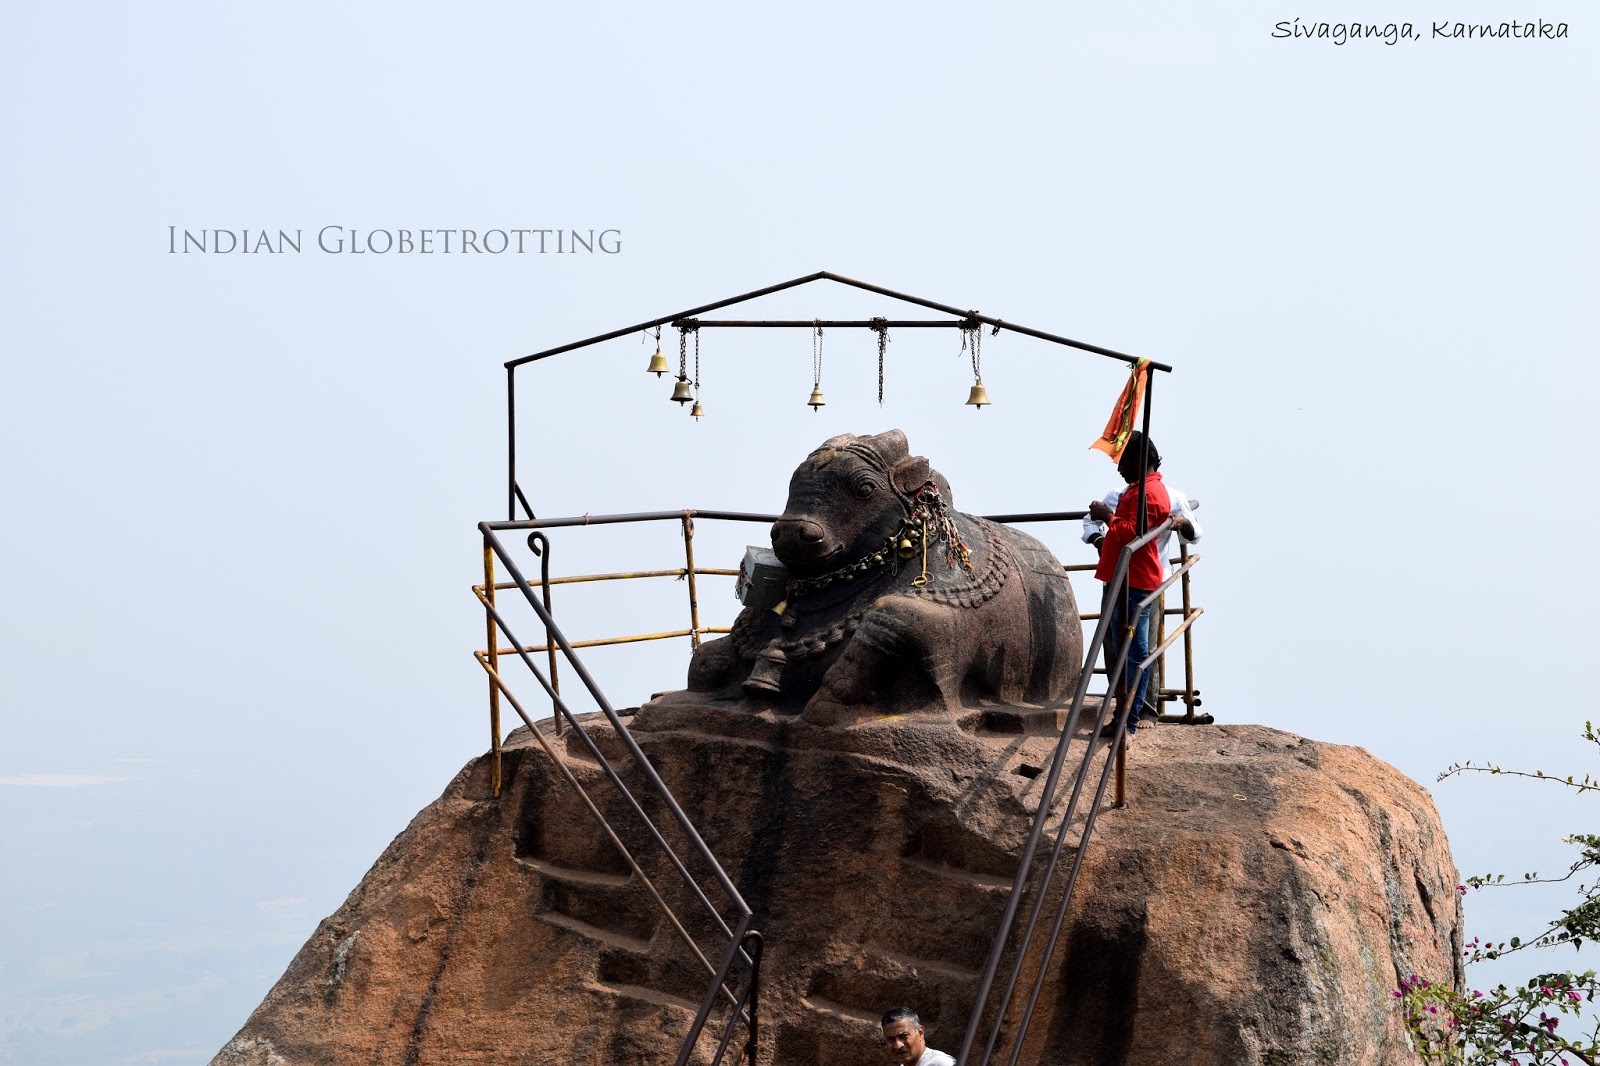 Nandi Statue on top of Shivaganga hill or shivaganga betta